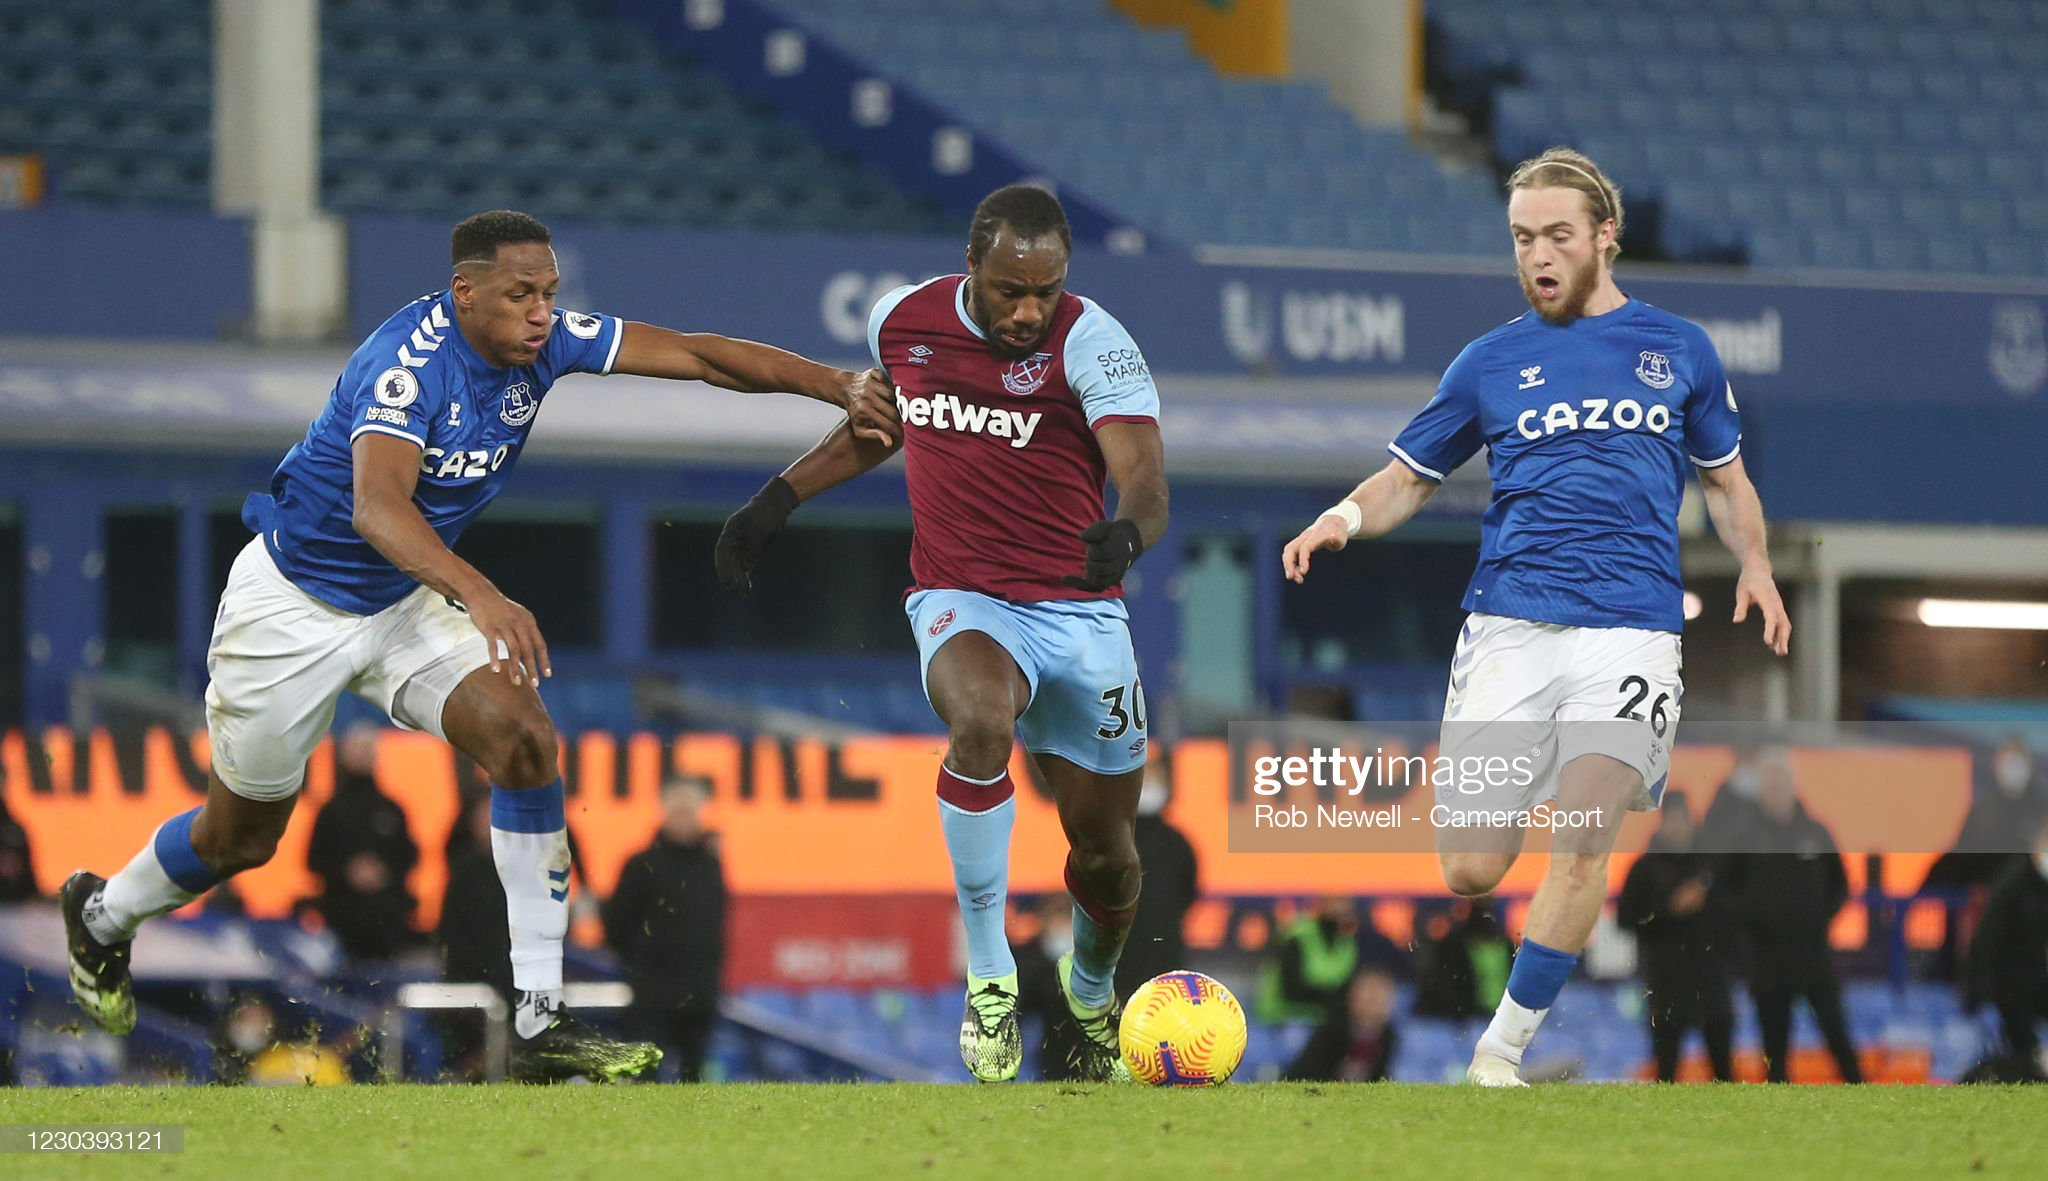 West Ham vs Everton Preview, prediction and odds